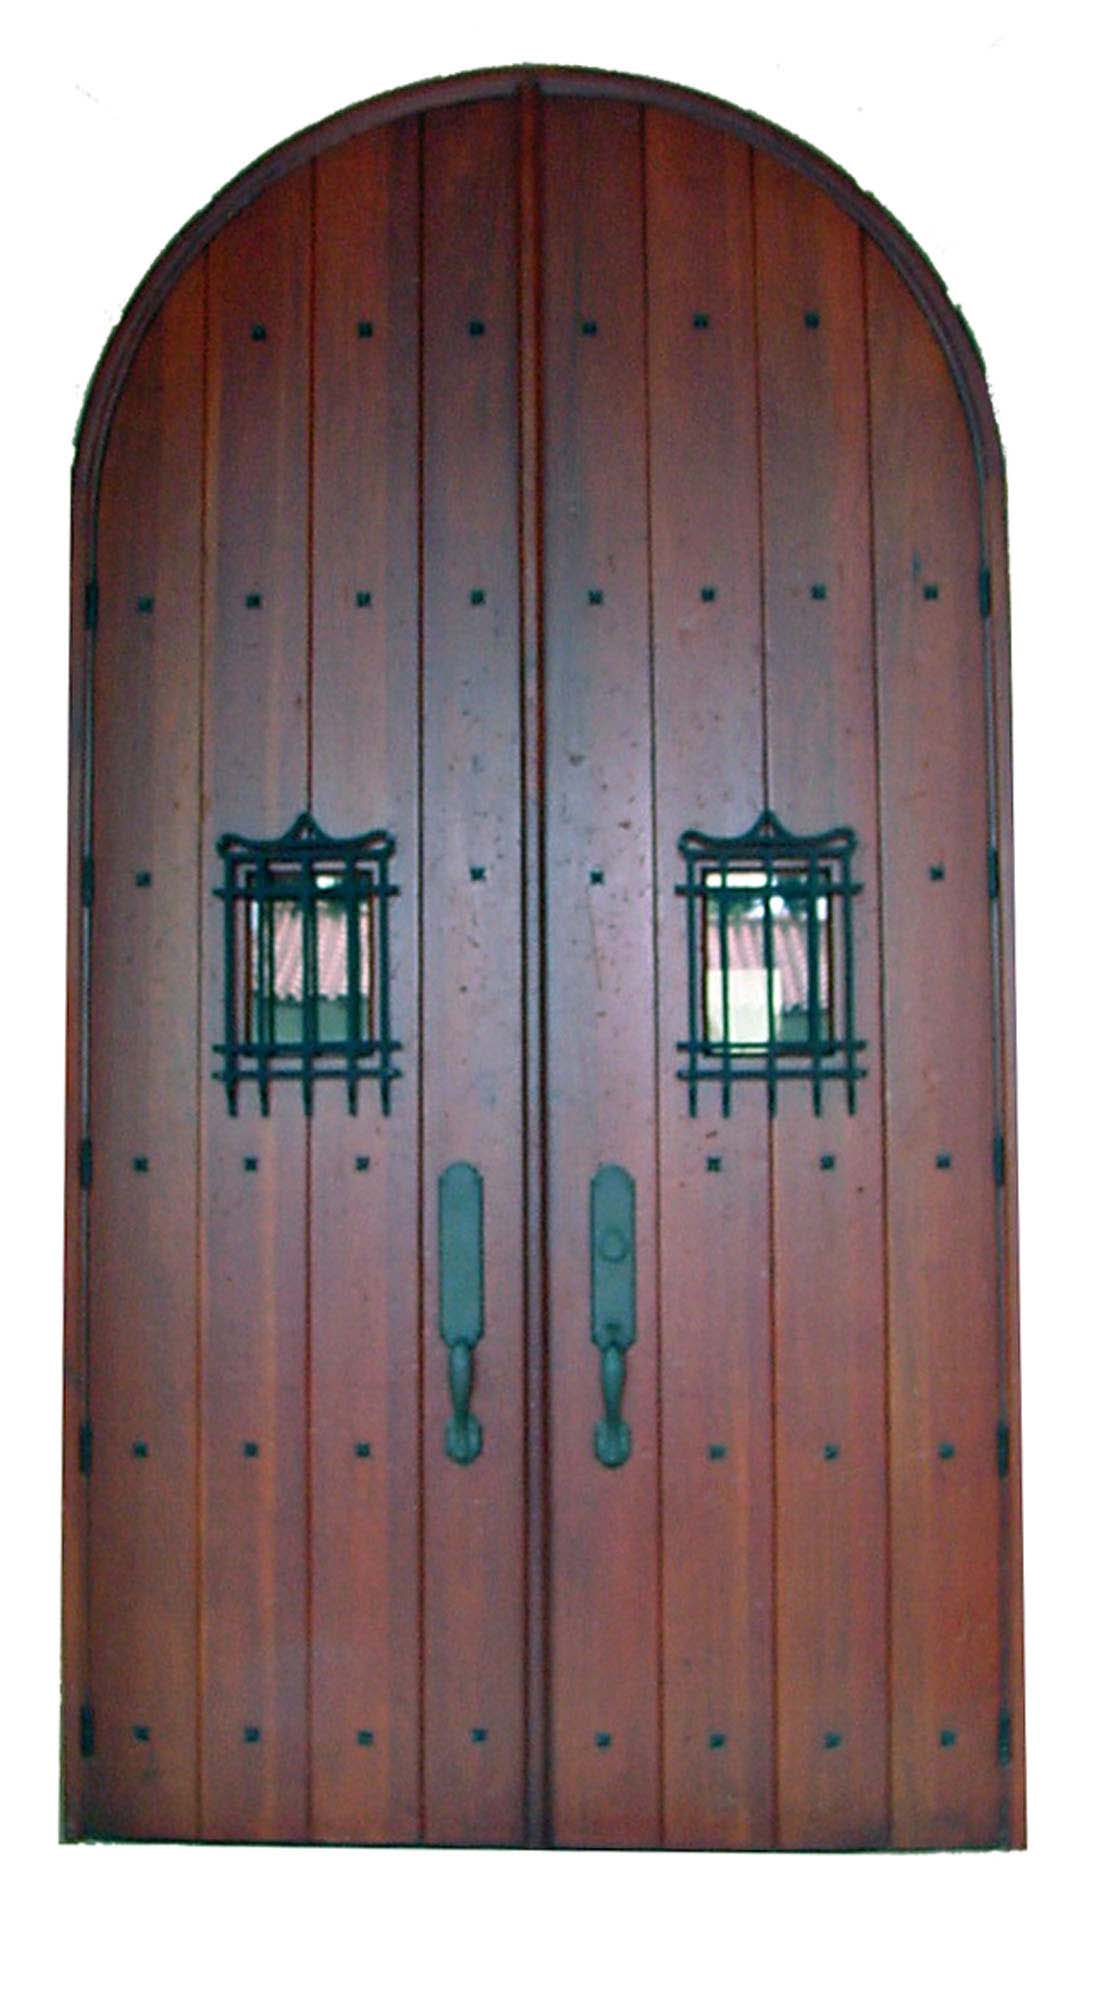 FONTAINEBLEAU DOOR WITH MOORS GRILL.